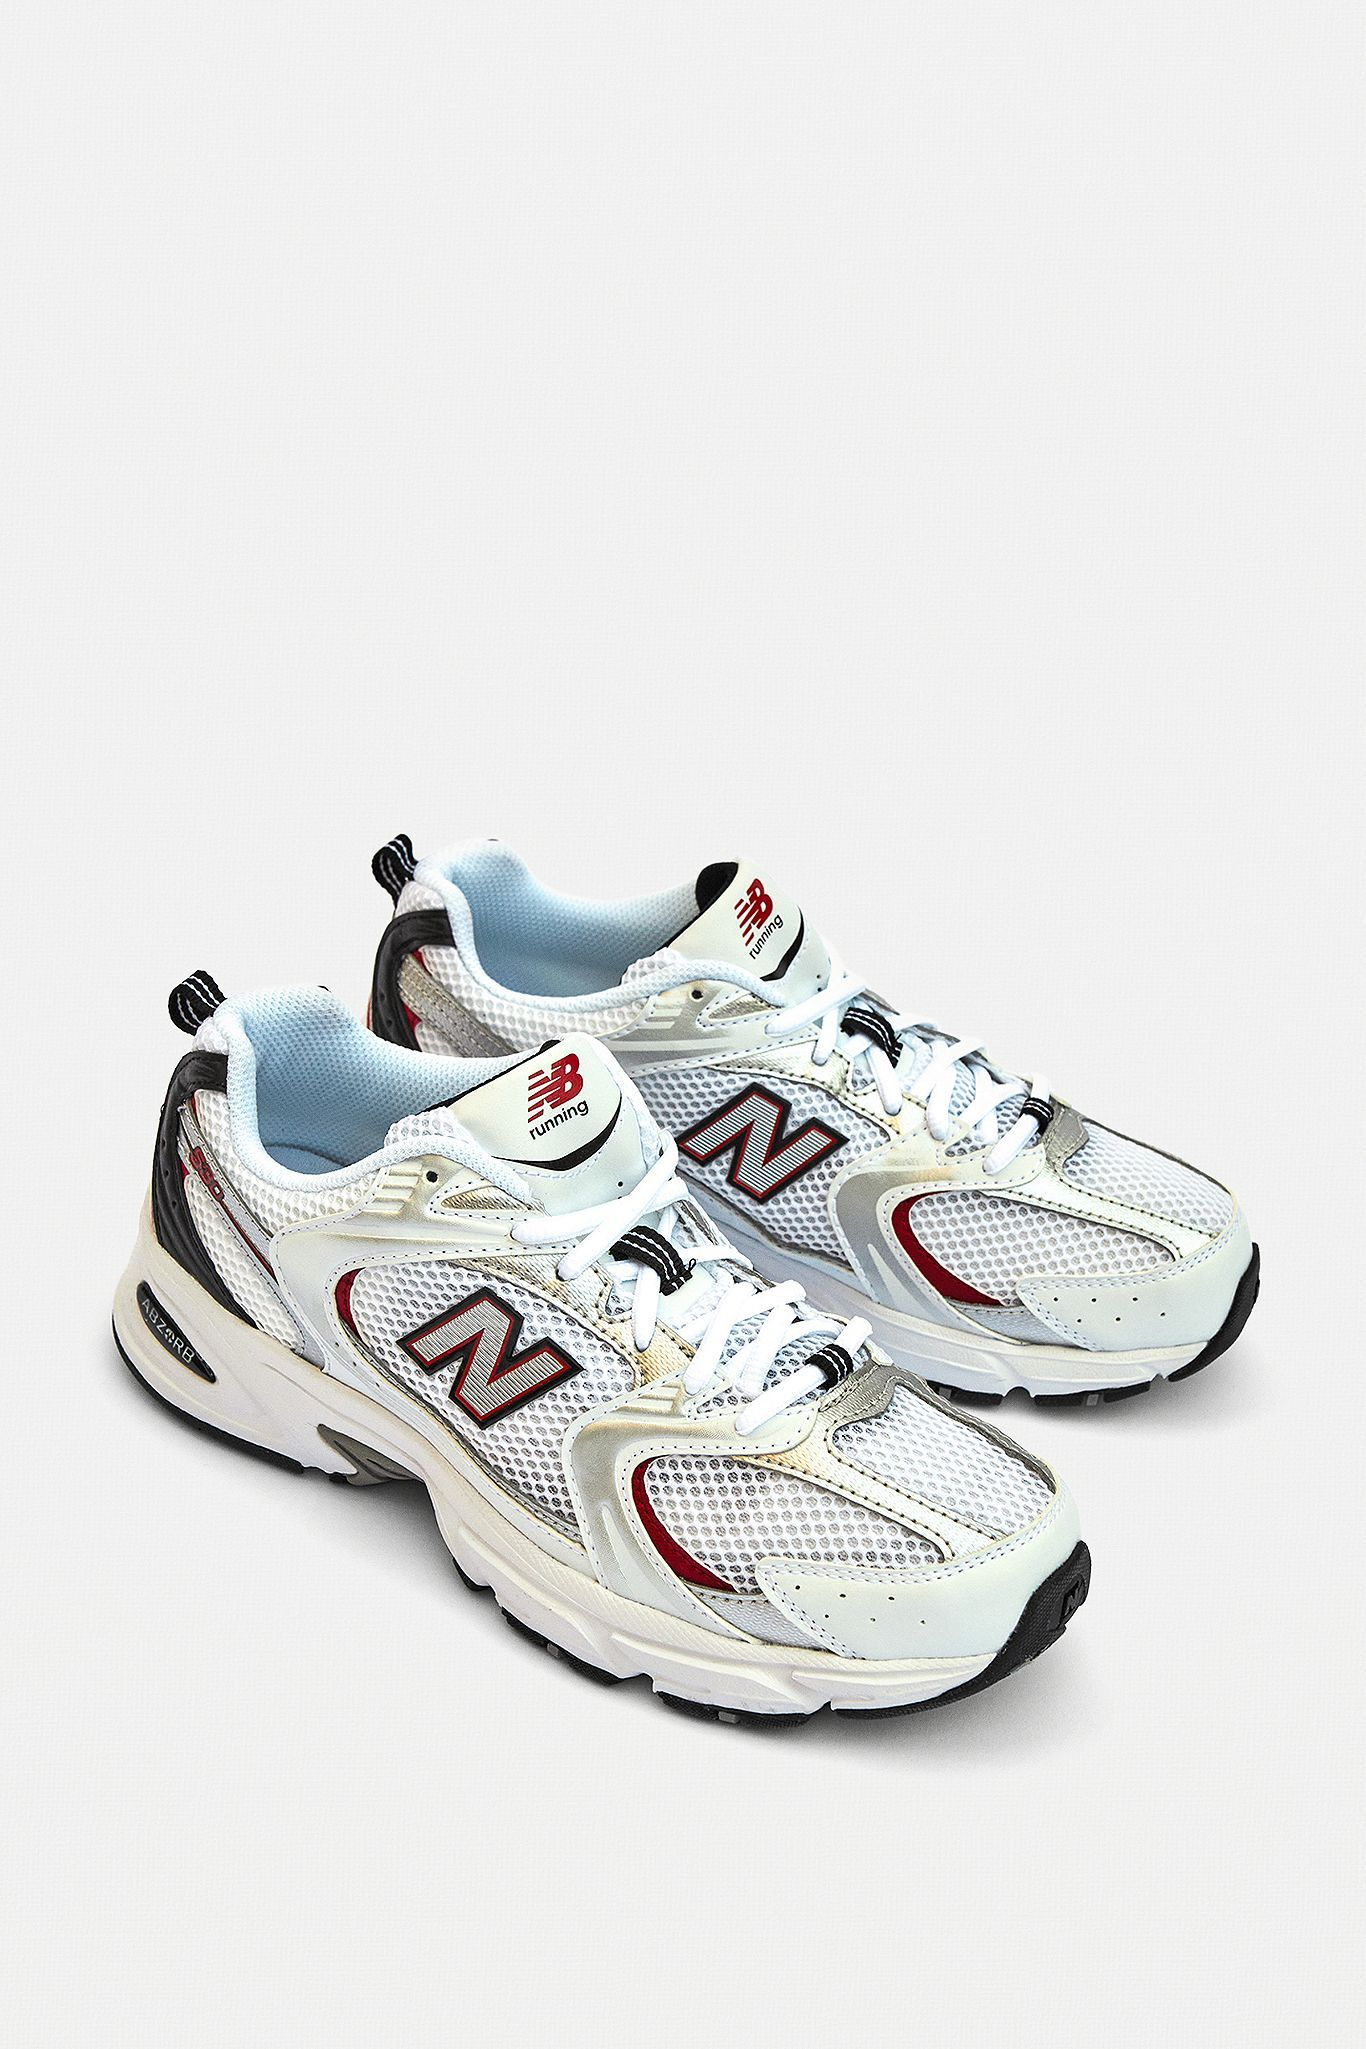 New Balance 530 White & Red Trainers   Urban Outfitters UK   Shoes ...